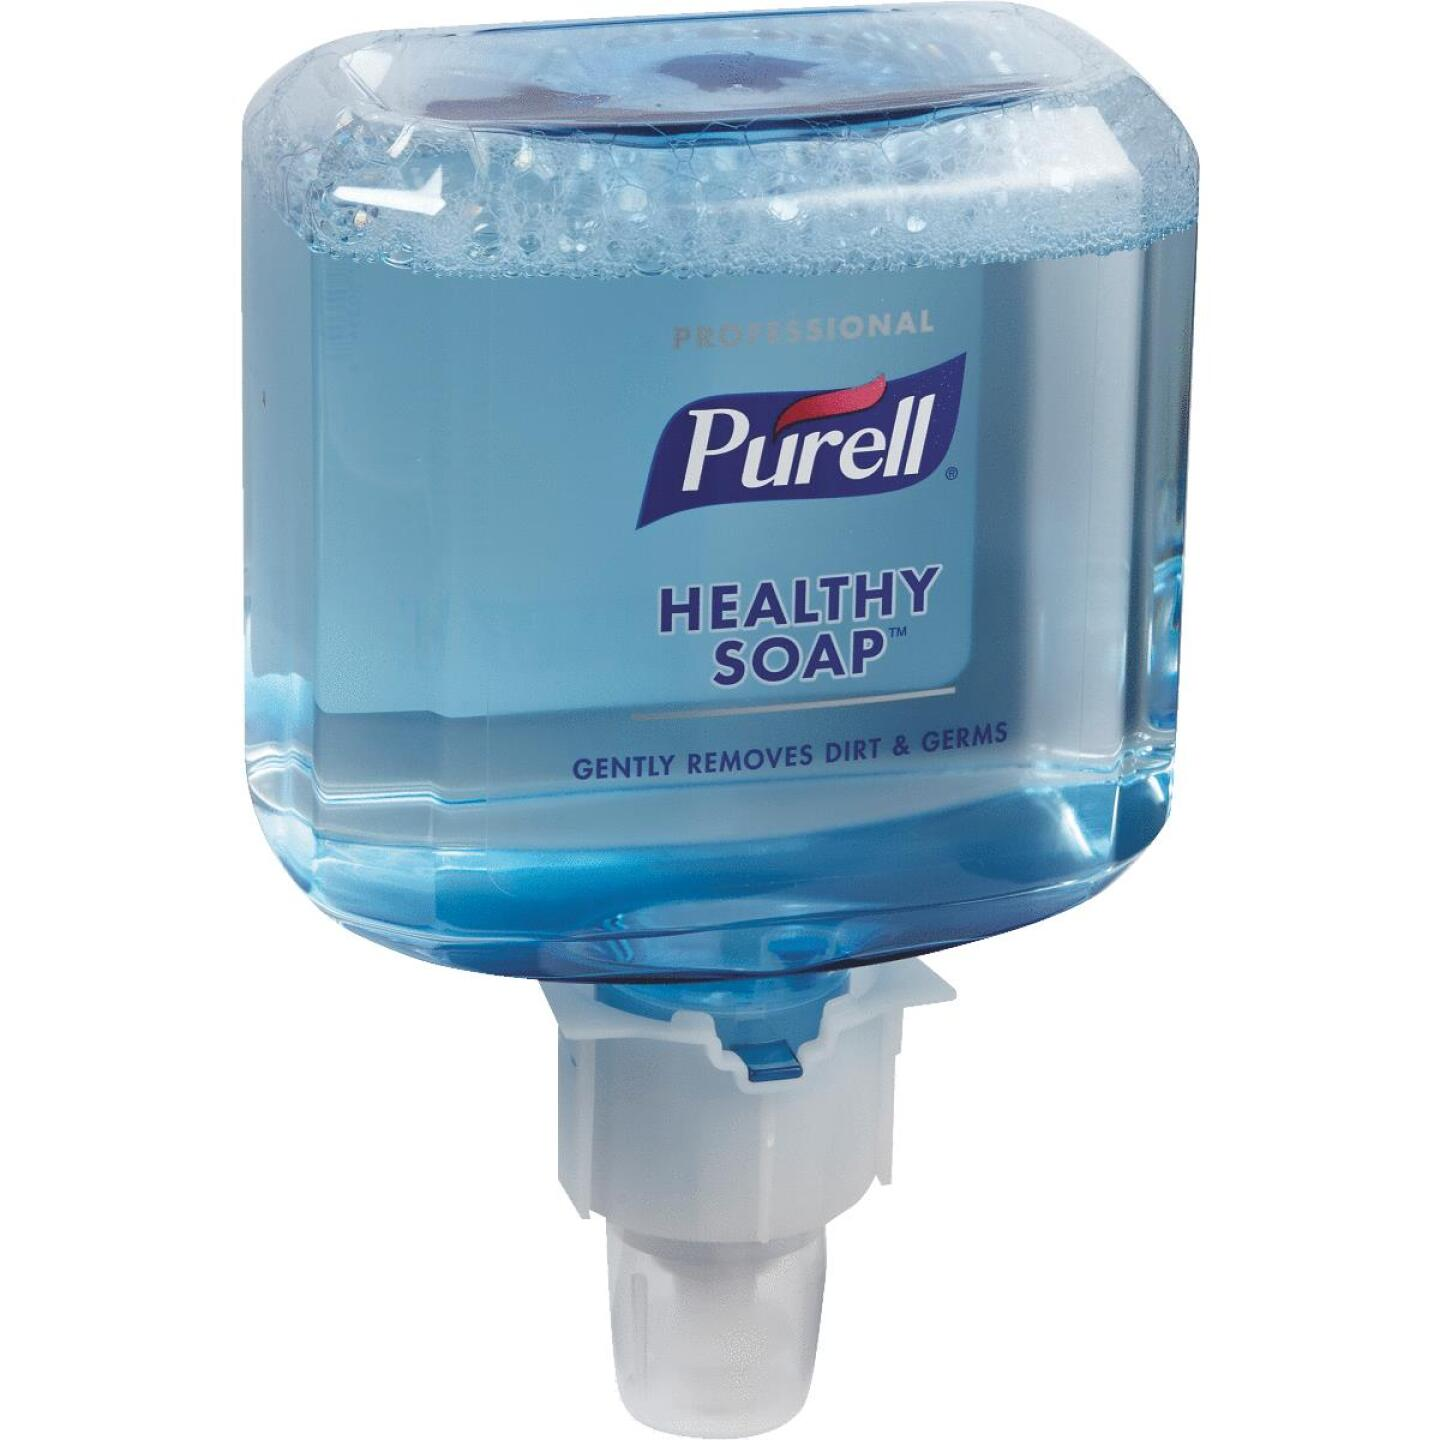 Purell ES6 1200mL Professional Healthy Soap Fresh Scent Foam Refill Image 1